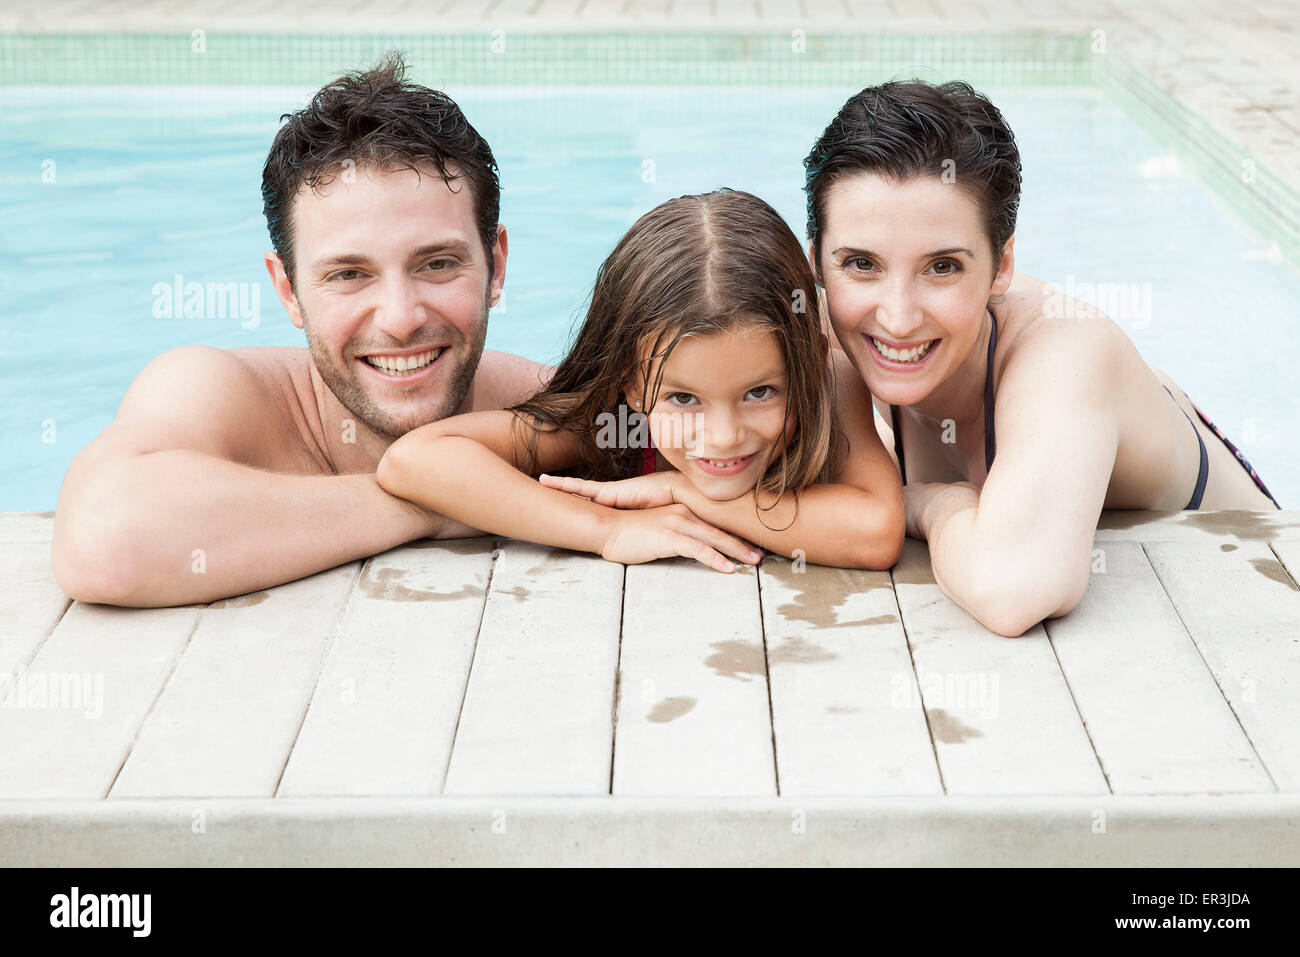 Family relaxing together in pool, portrait - Stock Image